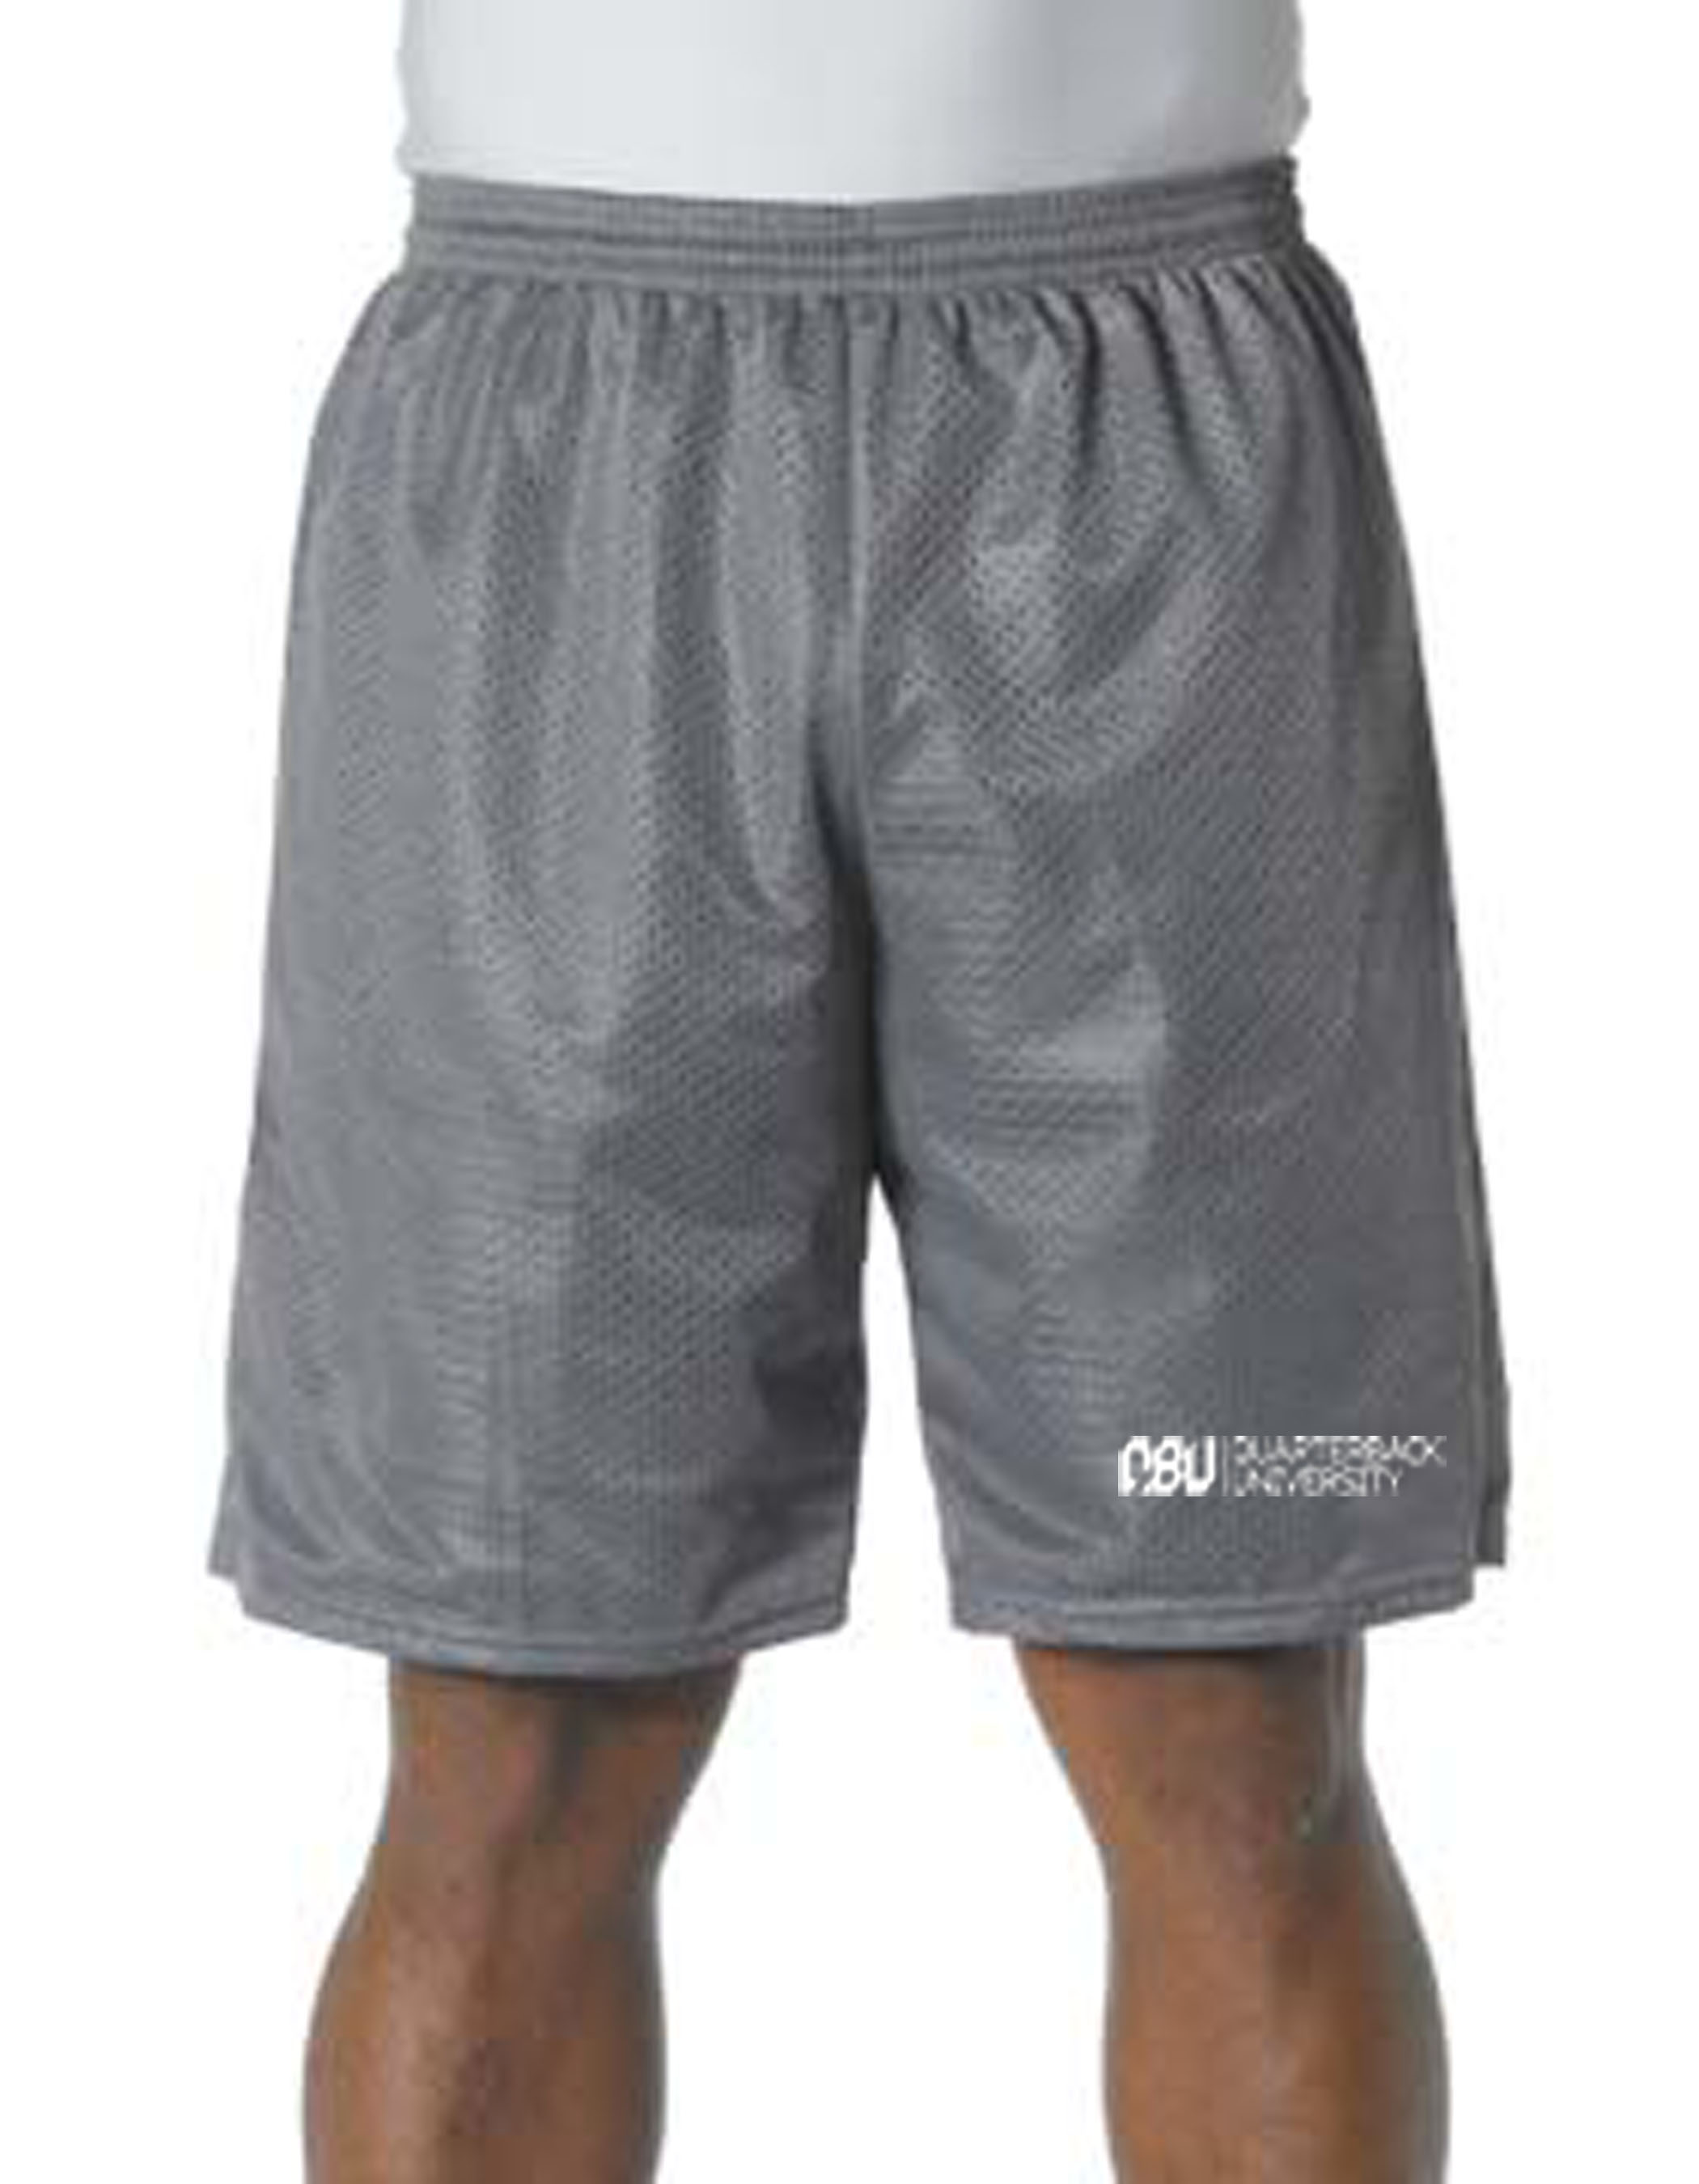 Quarterback University Shorts Grey